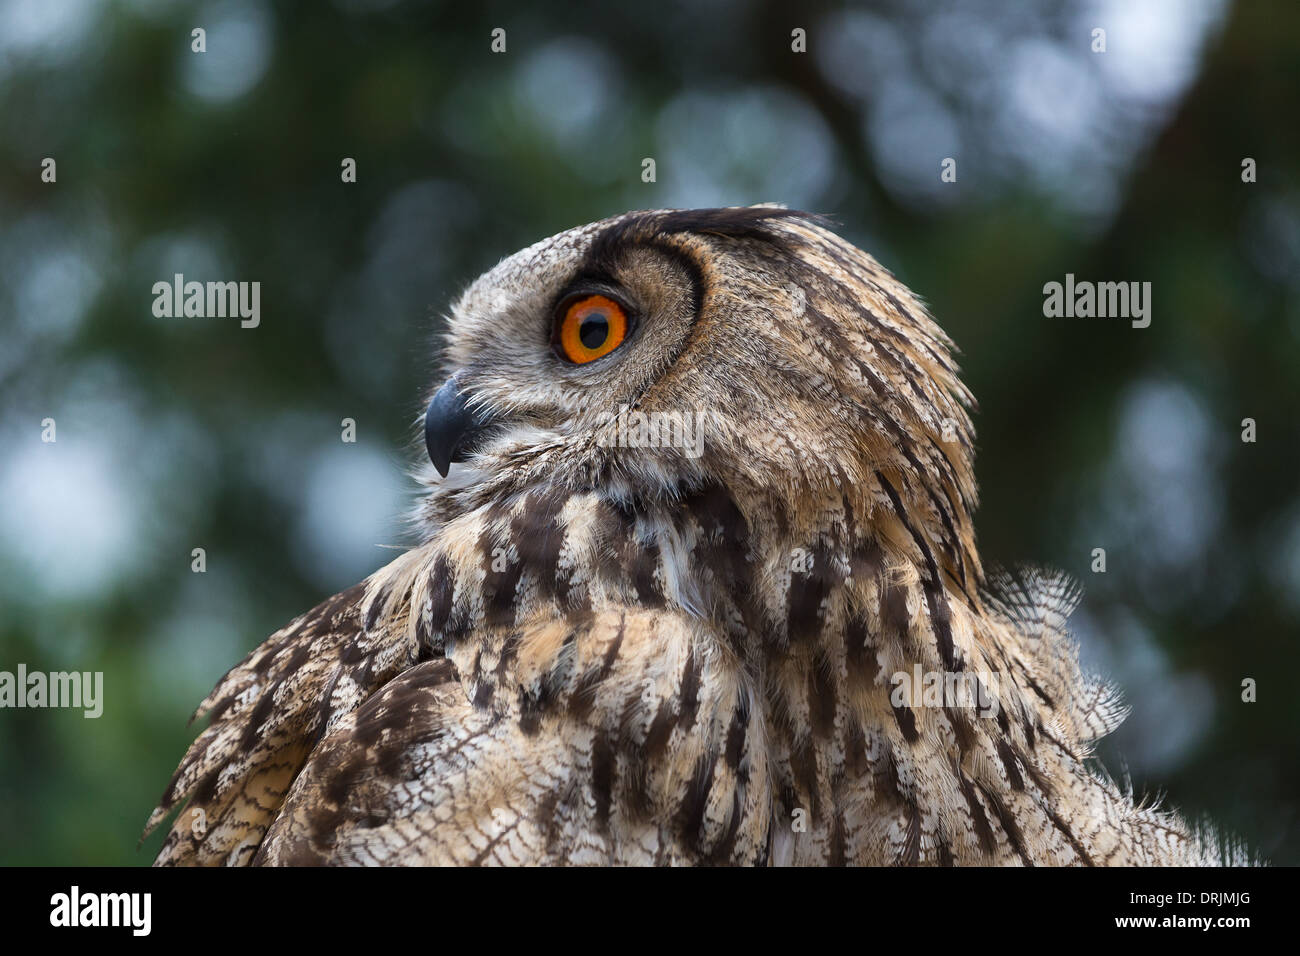 European Eagle Owl (Bubo bubo) preparing to take part in a falconry display beside Lac de Serre Ponçon in the French Alps - Stock Image